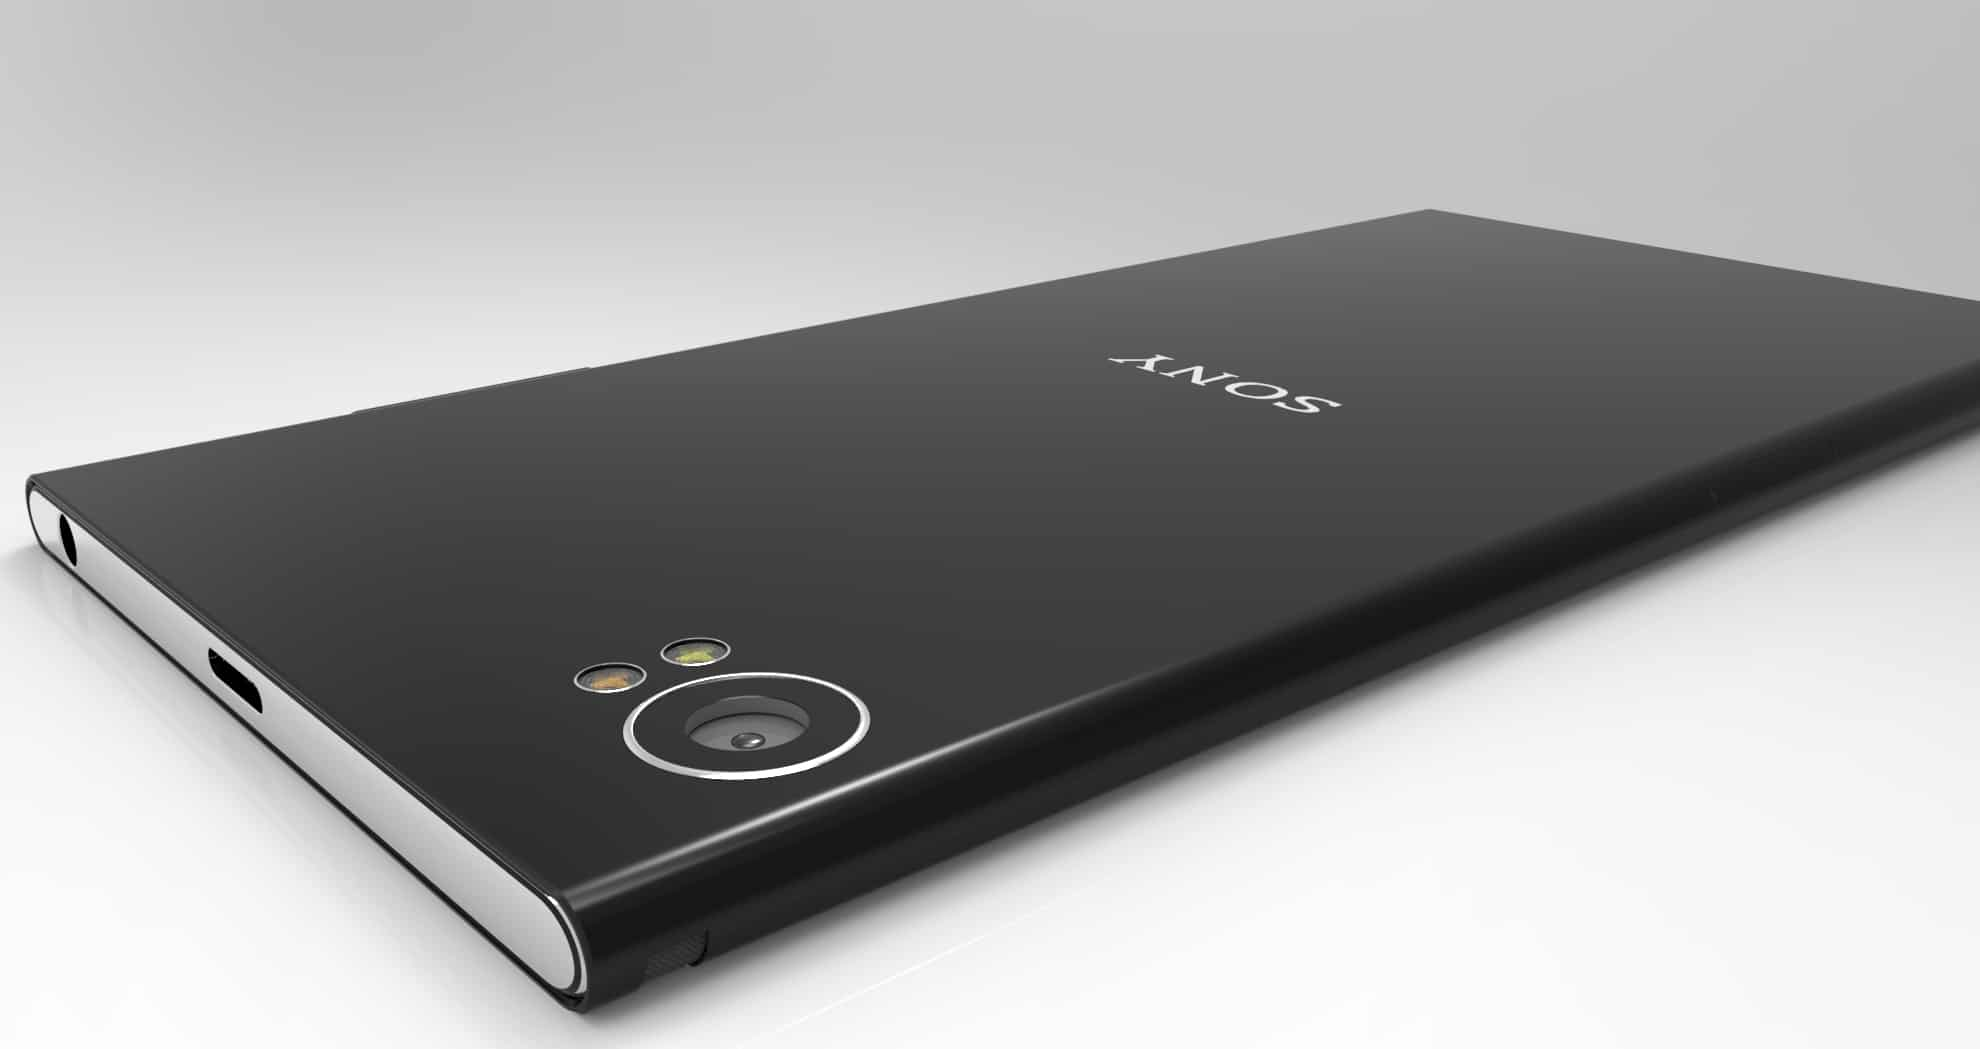 sony xperia z4 price. sony xperia curve is one of the better looking concepts lately z4 price